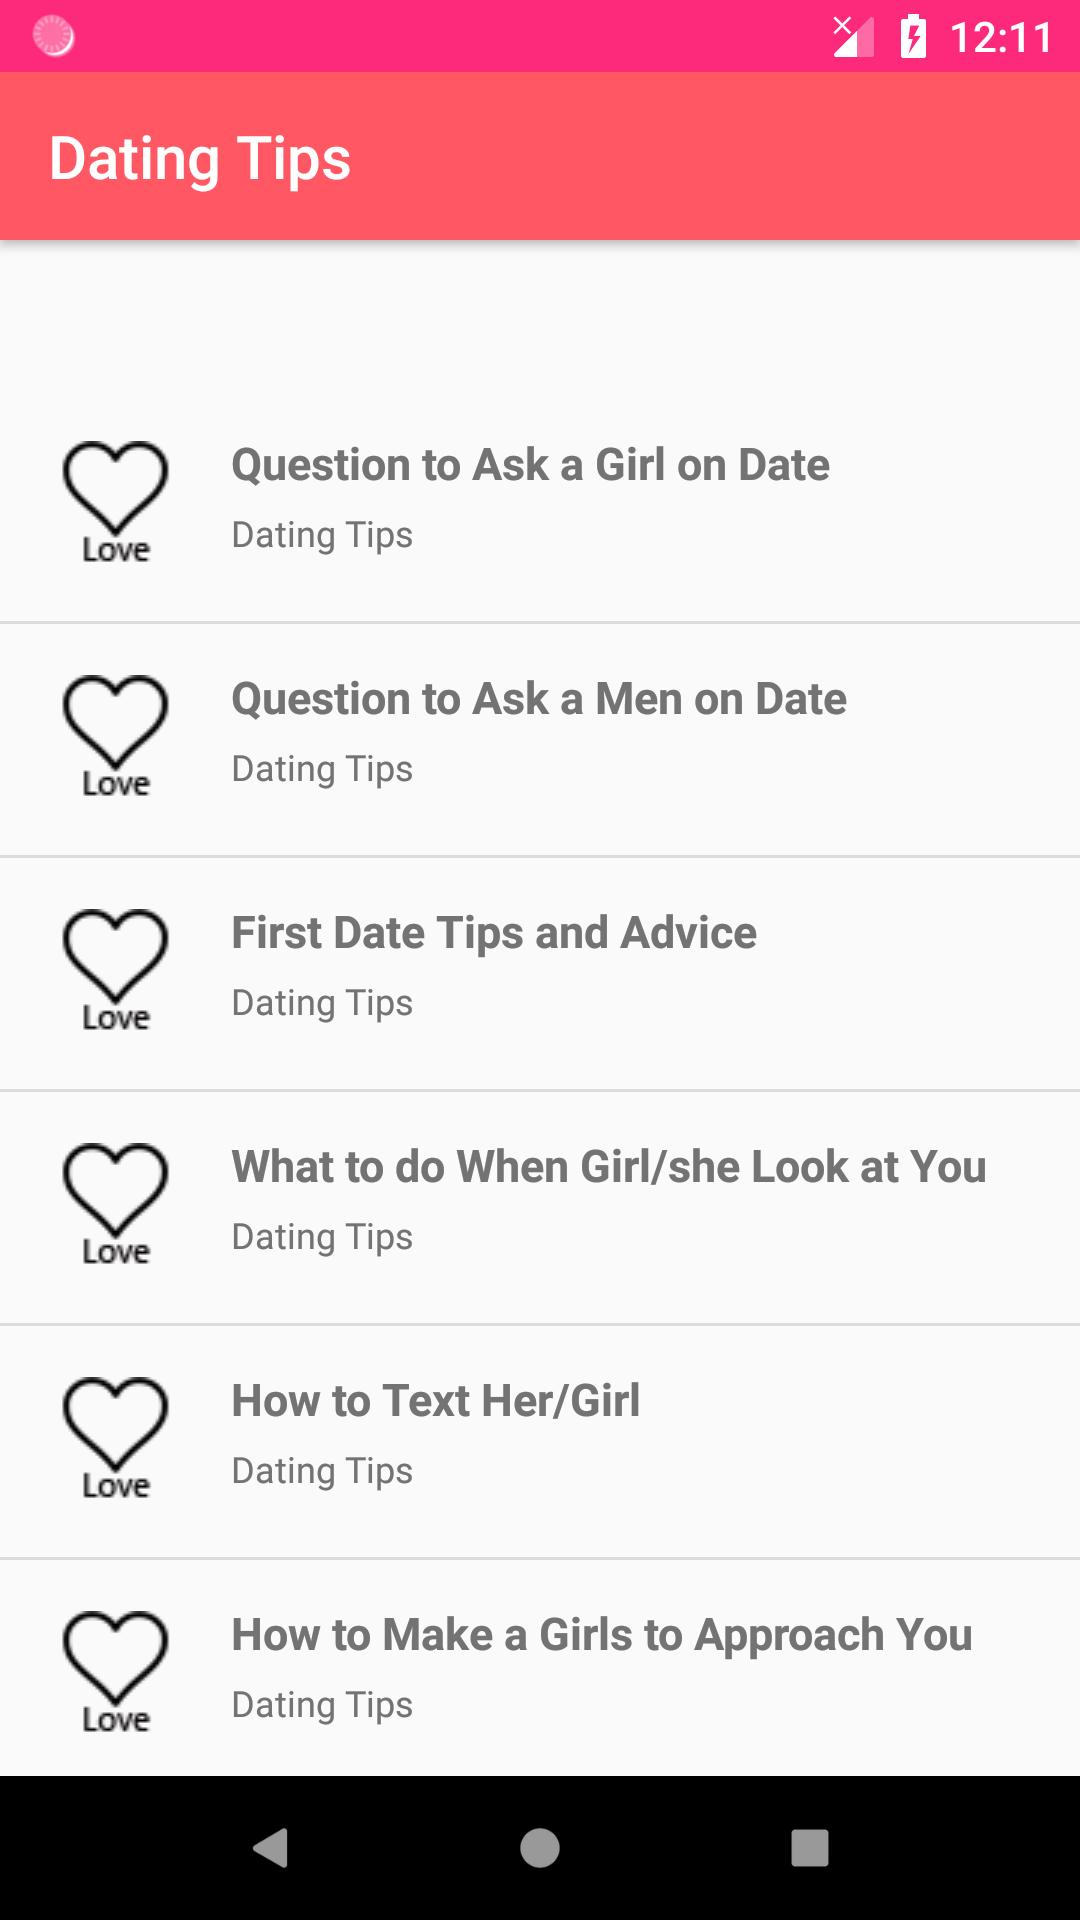 Dating Tips - Signs a Girl Likes You for Android - APK Download